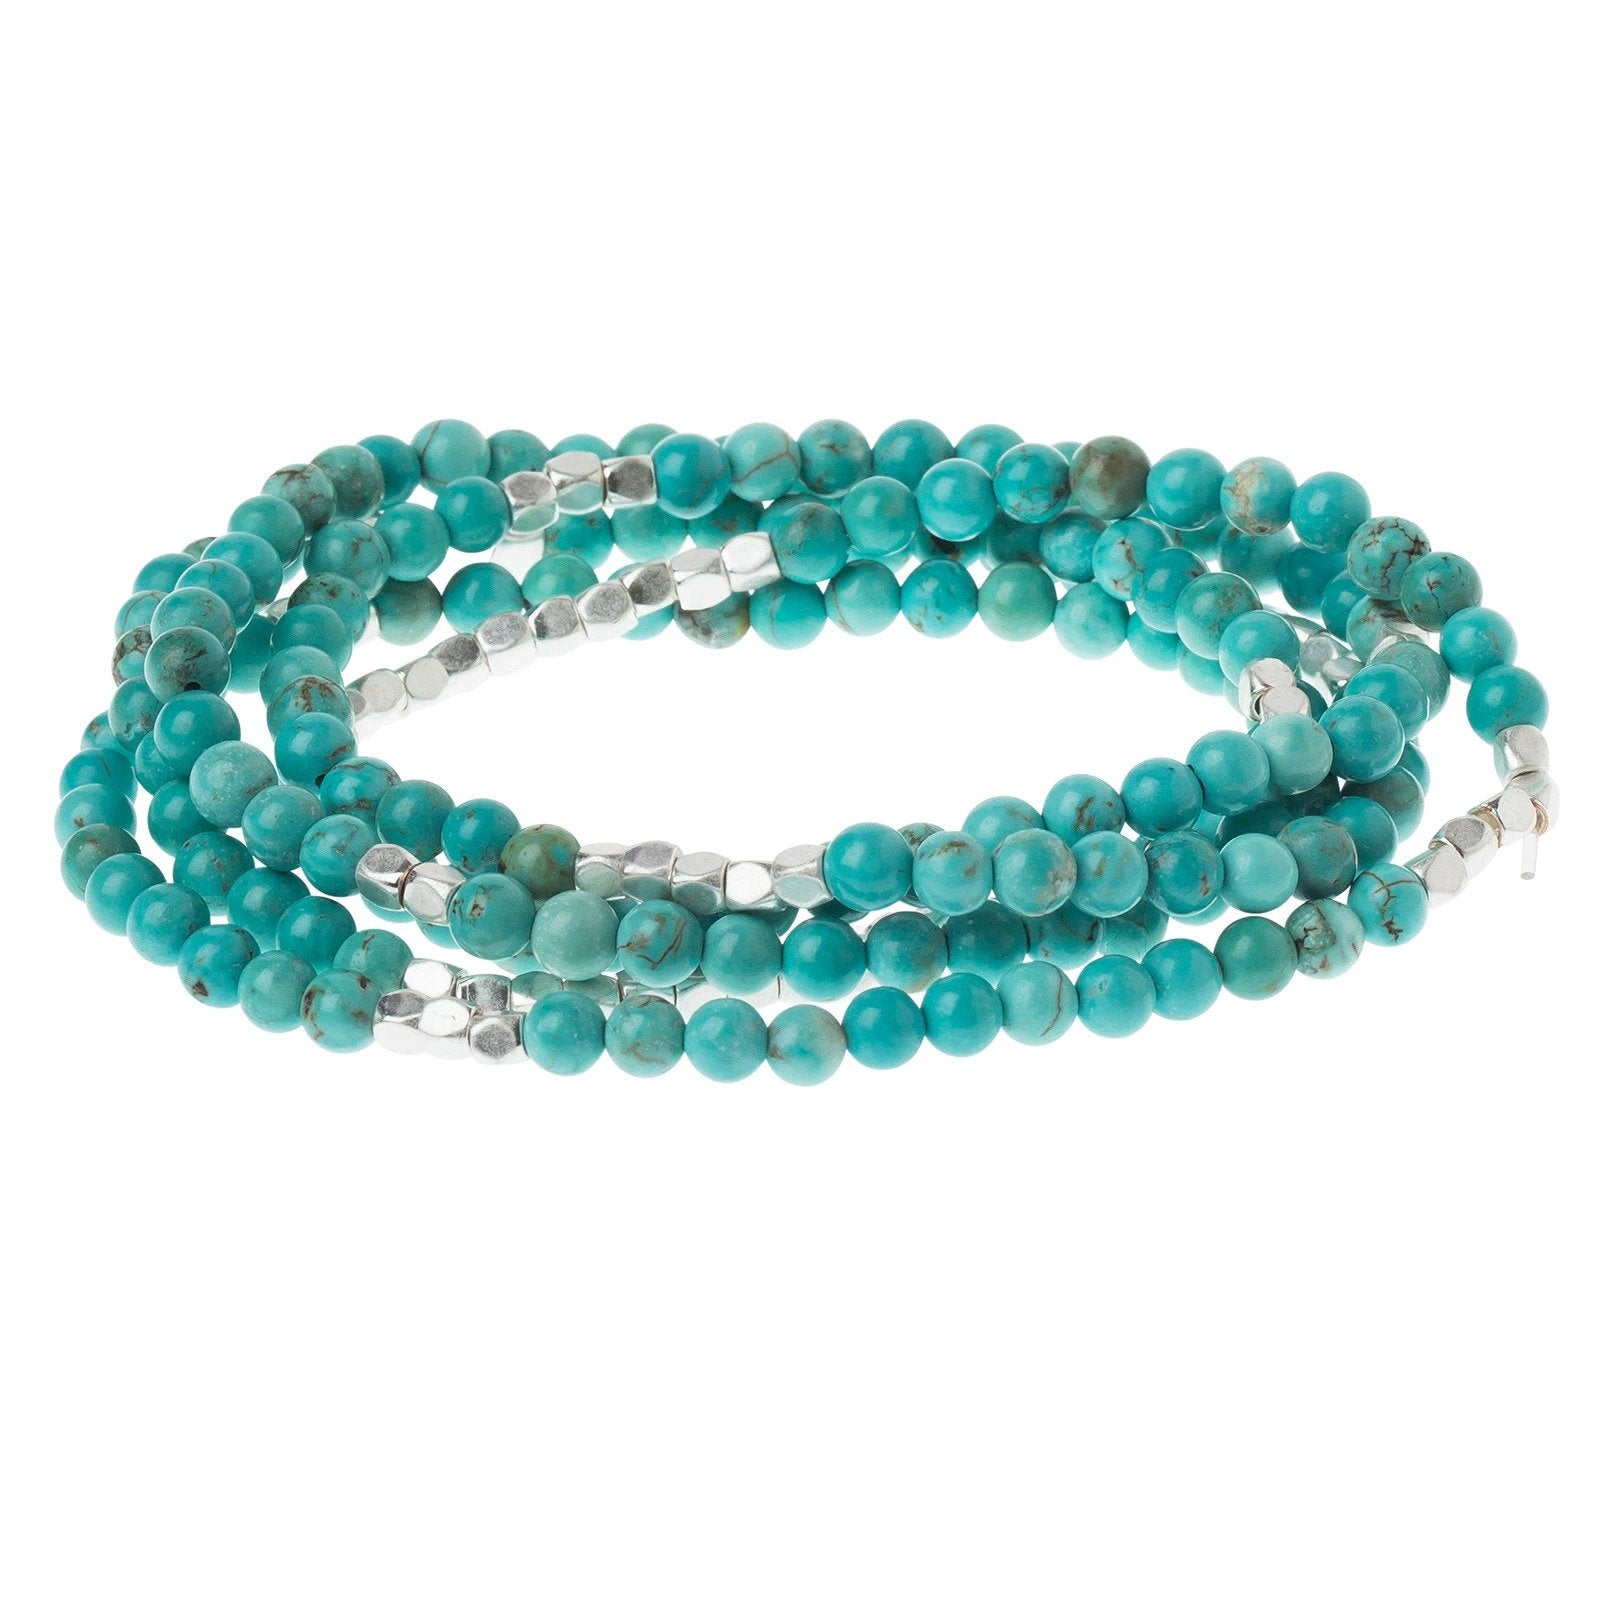 Turquoise with Silver Wrap Bracelet